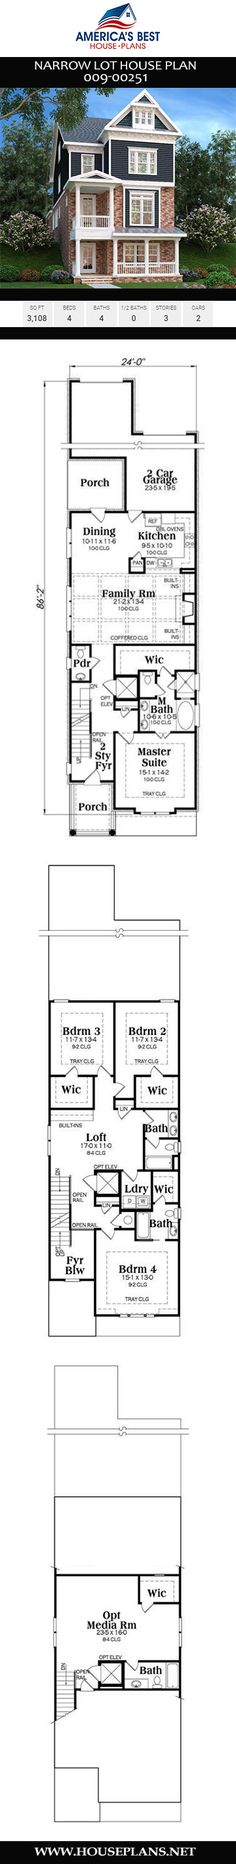 82 Best Narrow Lot House Plans images in 2019 | House plans ... Narrow Lot House Plans With Loft on carriage house plans with loft, ranch house plans with loft, beach house plans with loft, small house plans with loft, guest house plans with loft, cabin house plans with loft, log house plans with loft, craftsman house plans with loft,